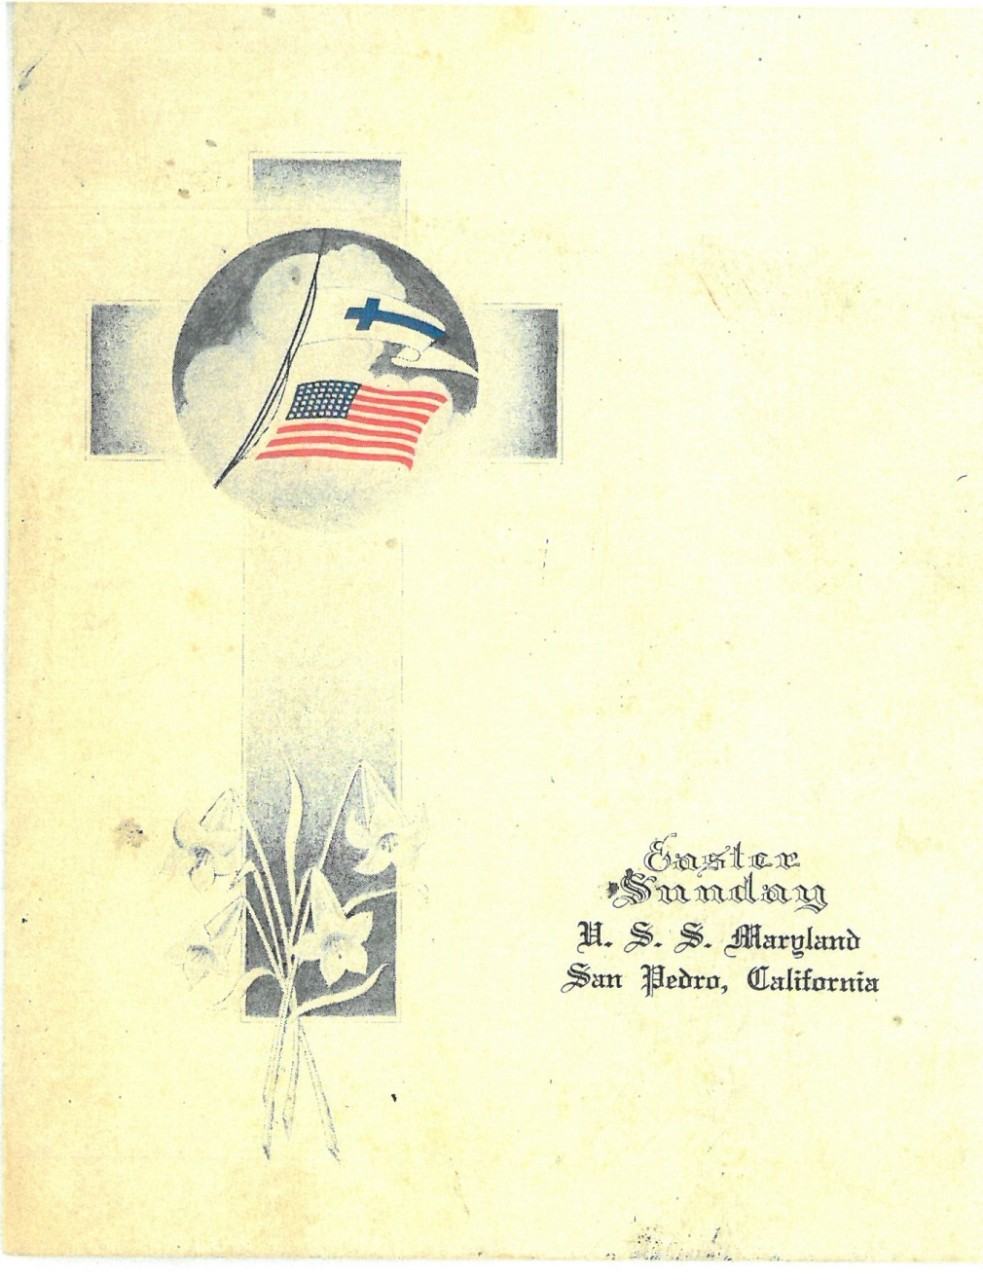 Picture of a cross with an American flag and Easter lilies with words: Easter Sunday, USS Maryland, San Pedro, Calfornia.